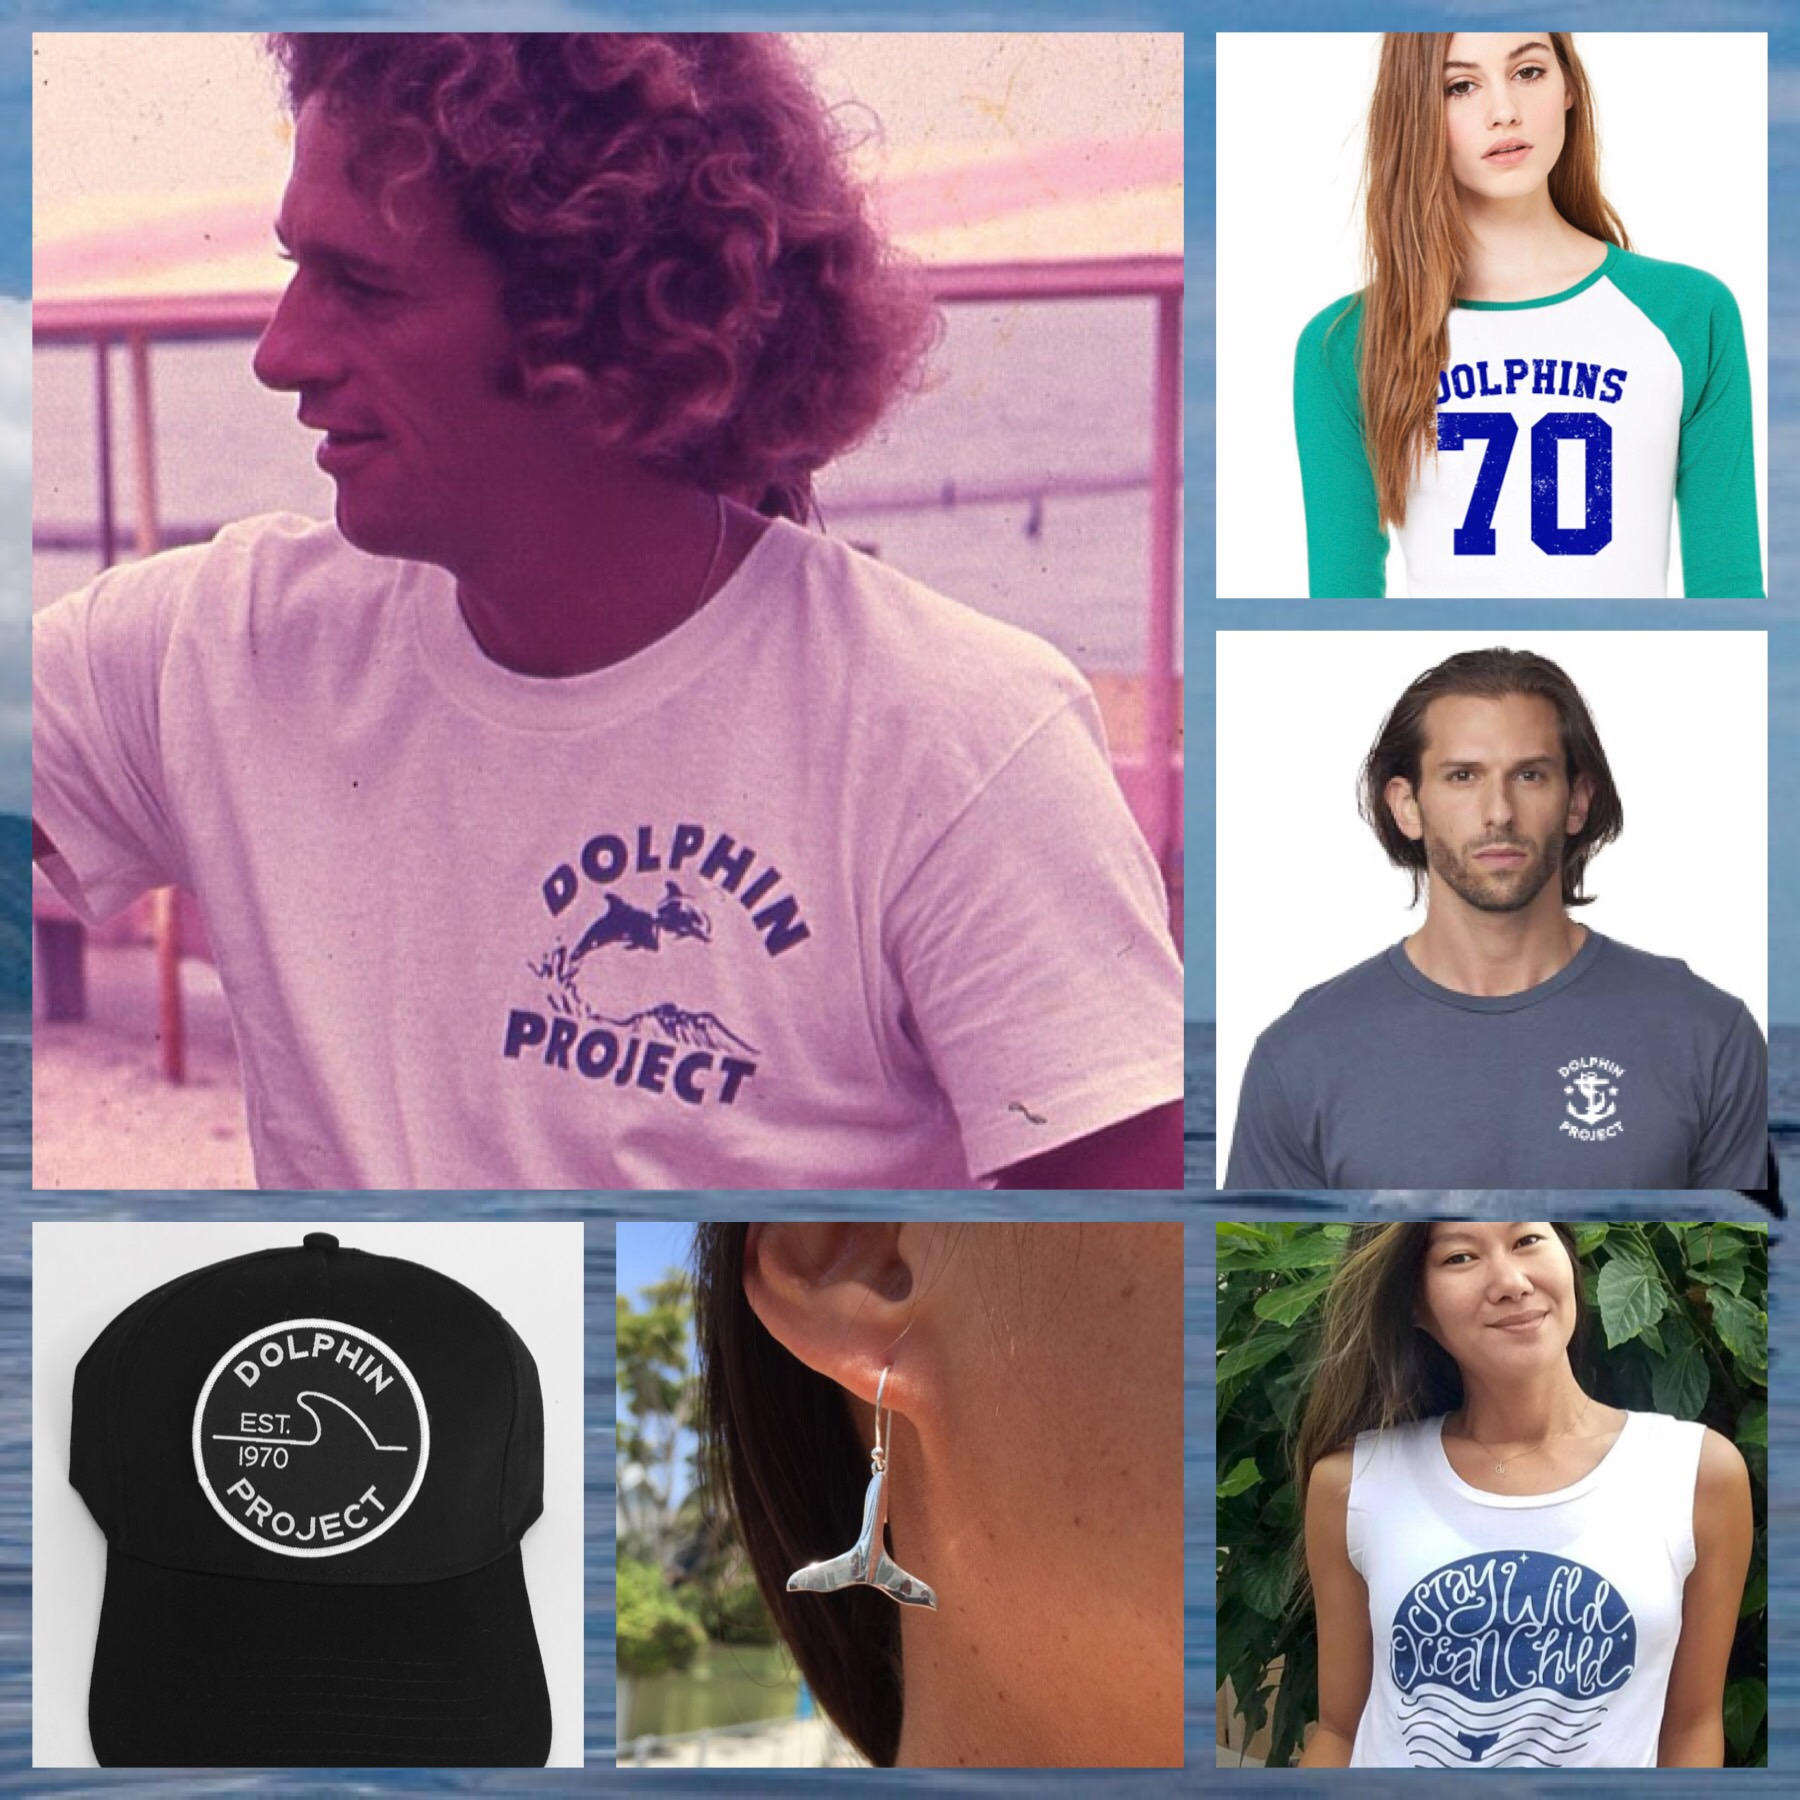 Shop our new anniversary gear and be a voice for the voiceless!